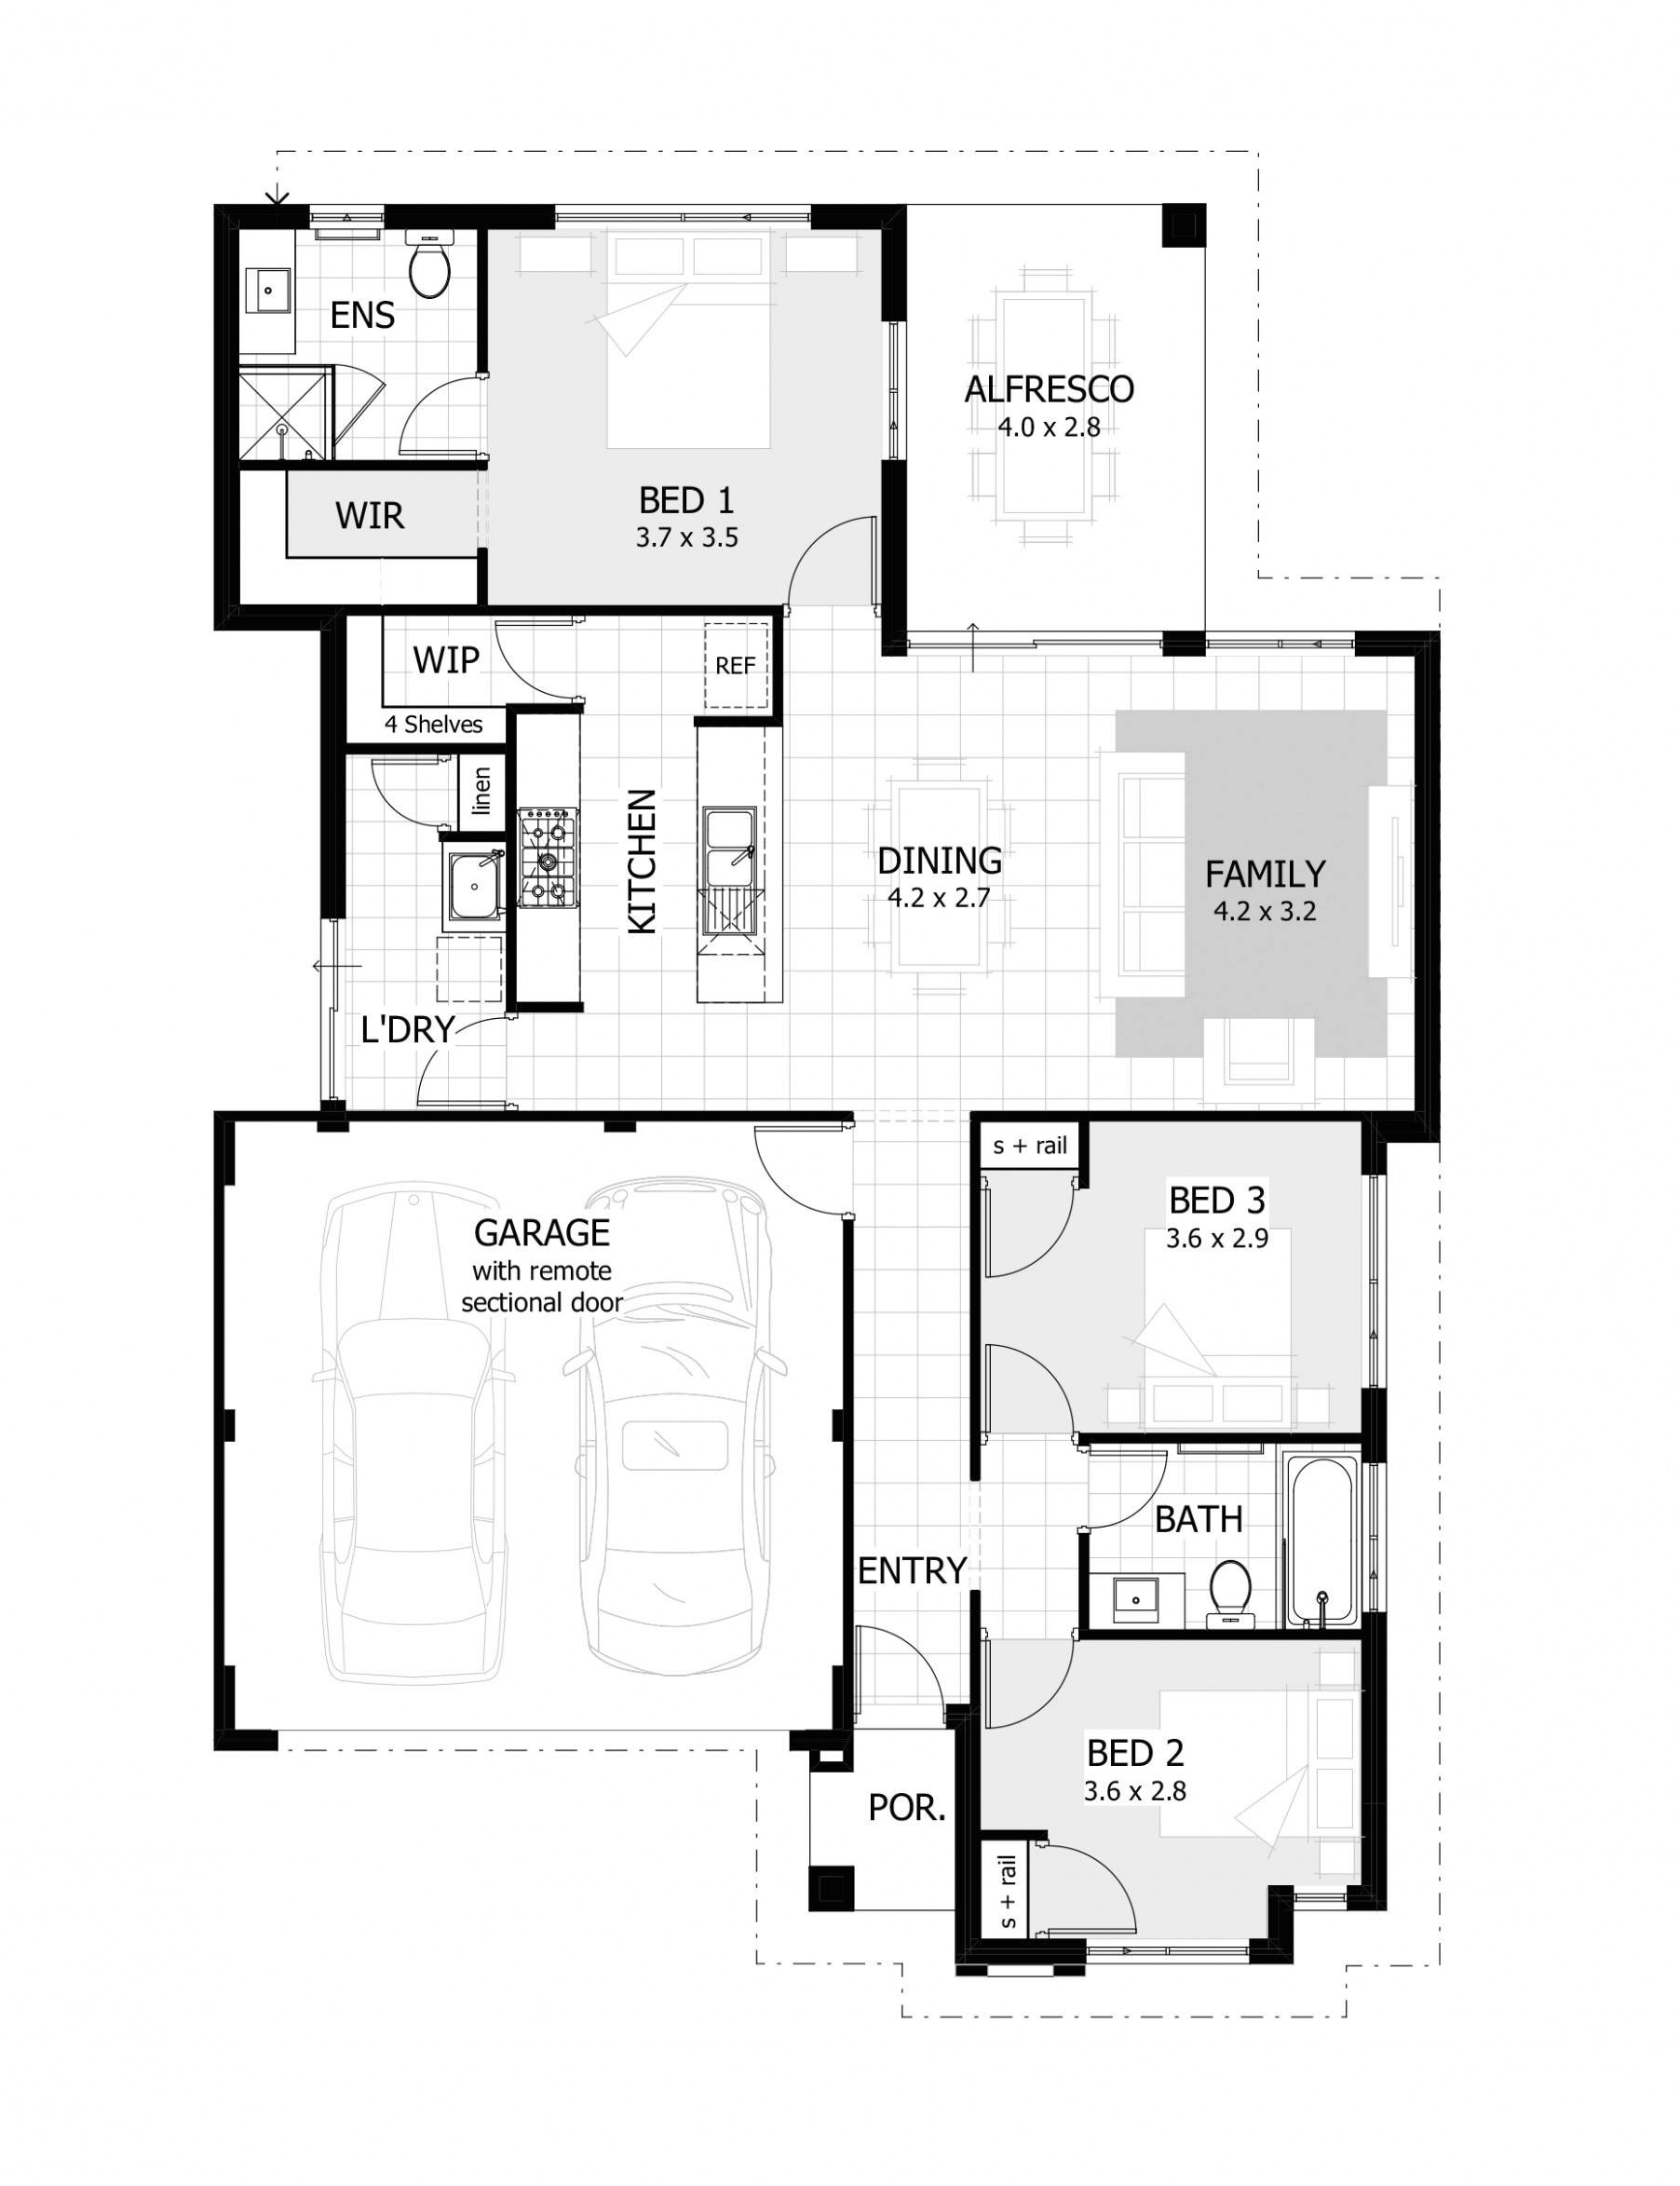 Free Single Family Home Floor Plans Single Family Home Plans Elegant 45 Unique Free Single